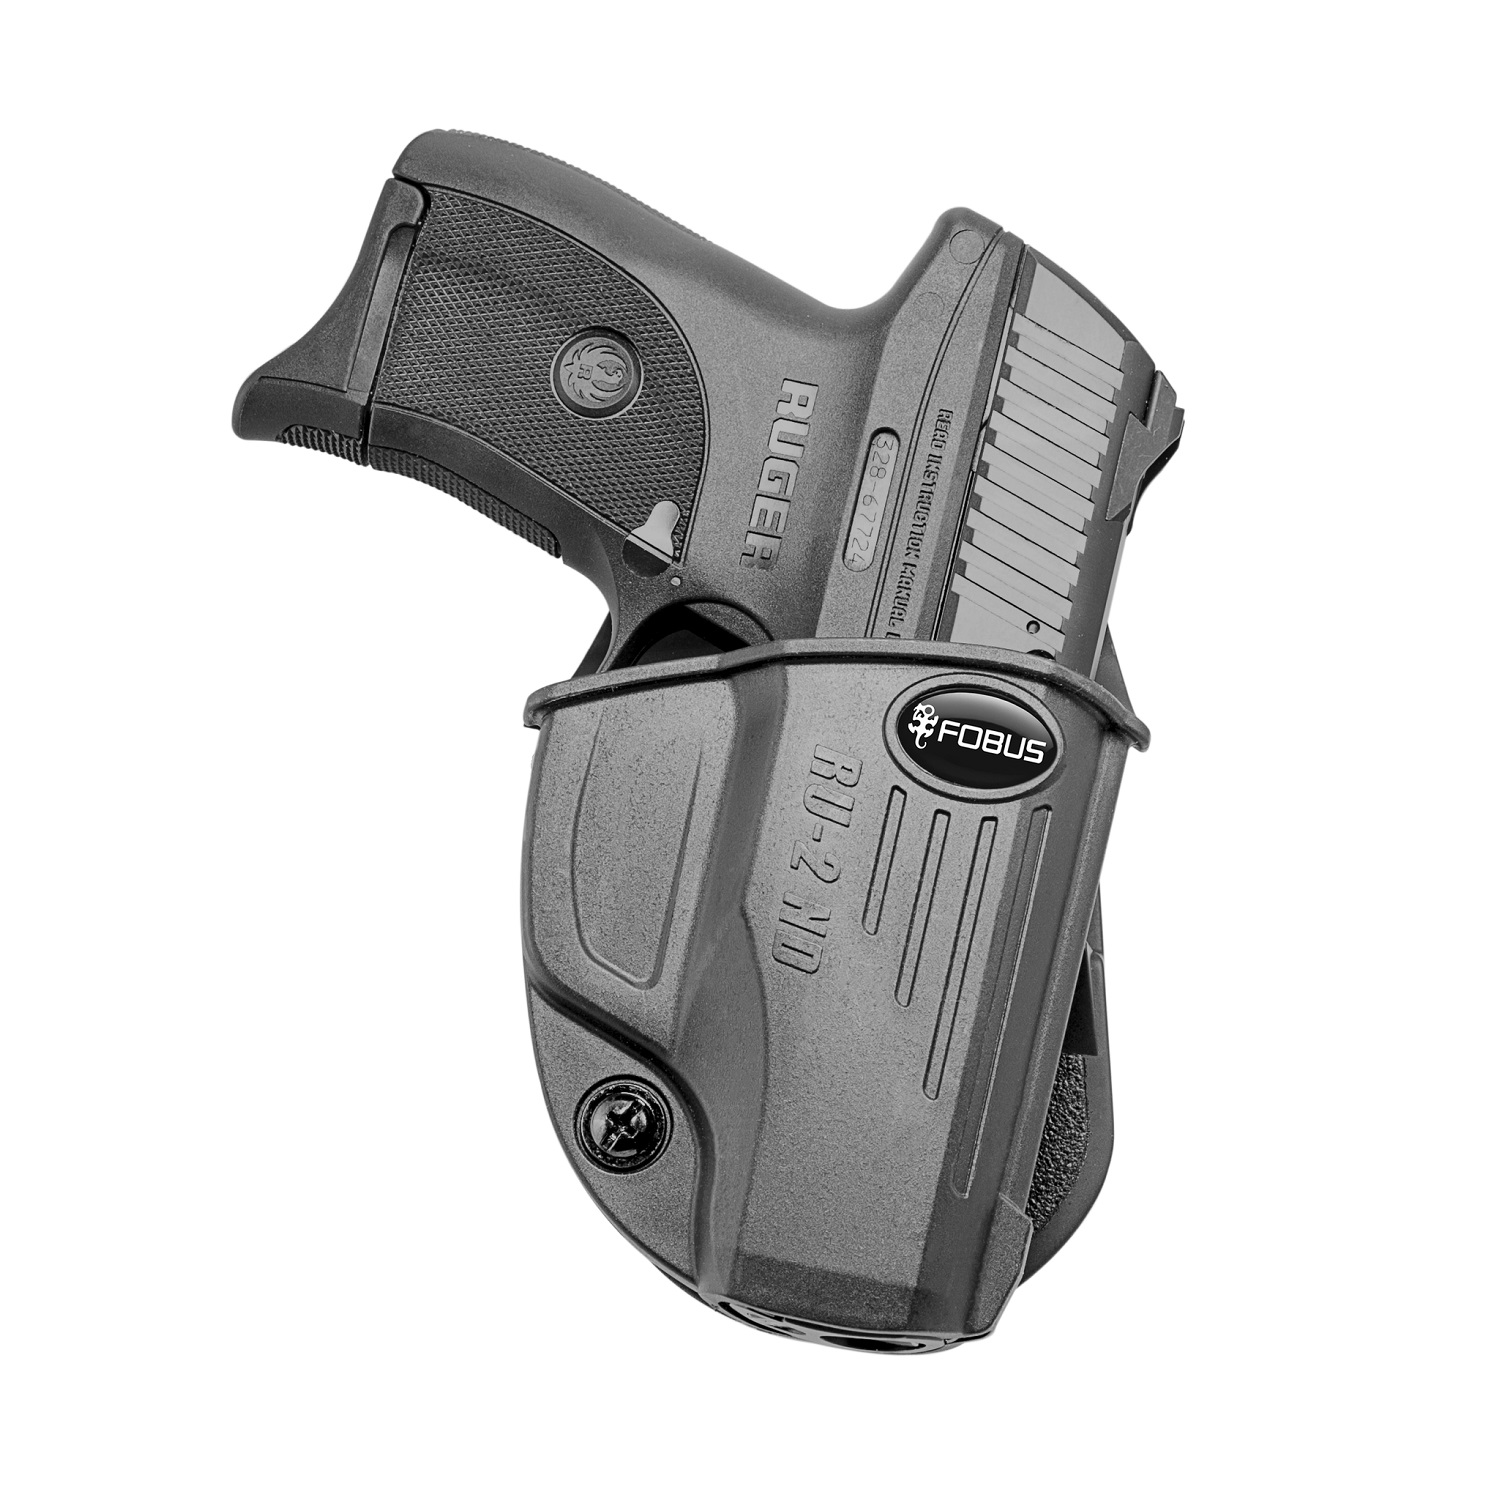 Fobus Evolution Paddle Holster-Ruger EC9s LC380 LC9 LC9s Pro by Fobus Holsters